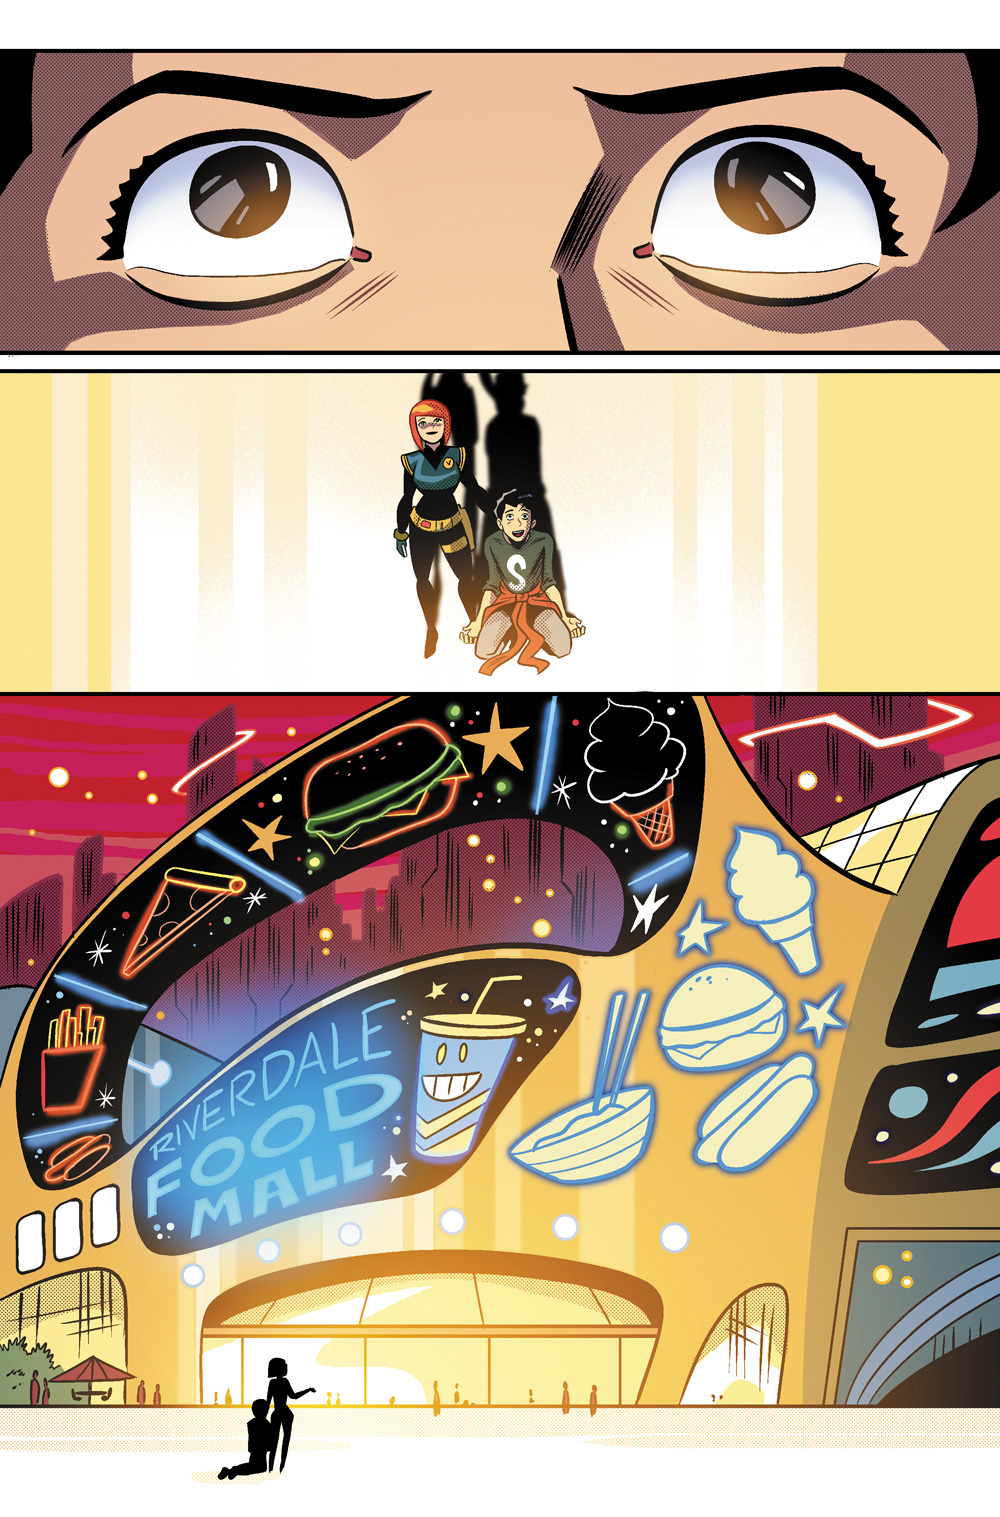 The moment where Jughead spots an all you can eat food mall in Jughead's Time Police #2.